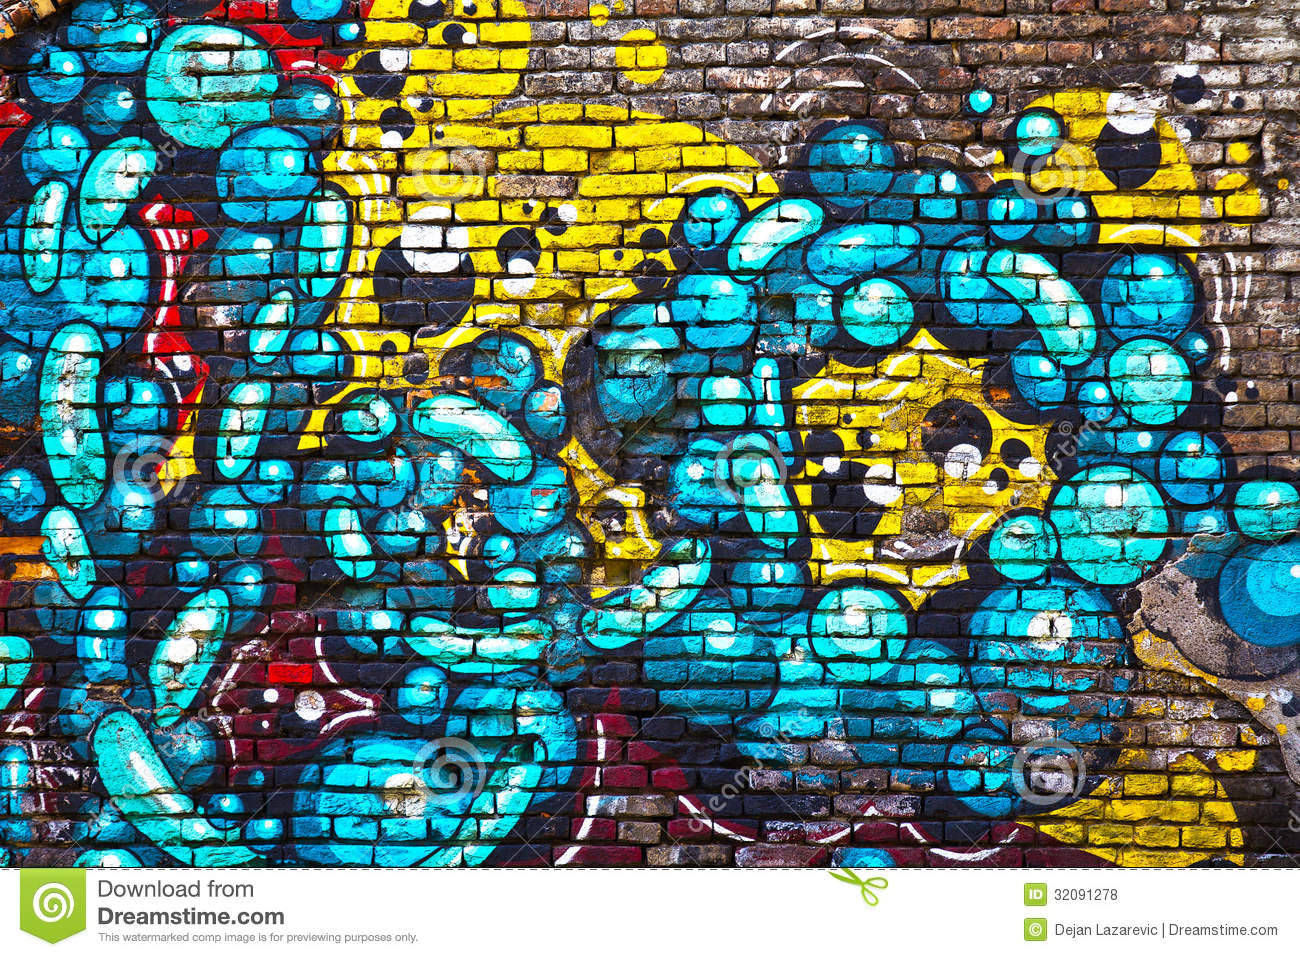 Graffiti De Mur De Briques Photos libres de droits - Image